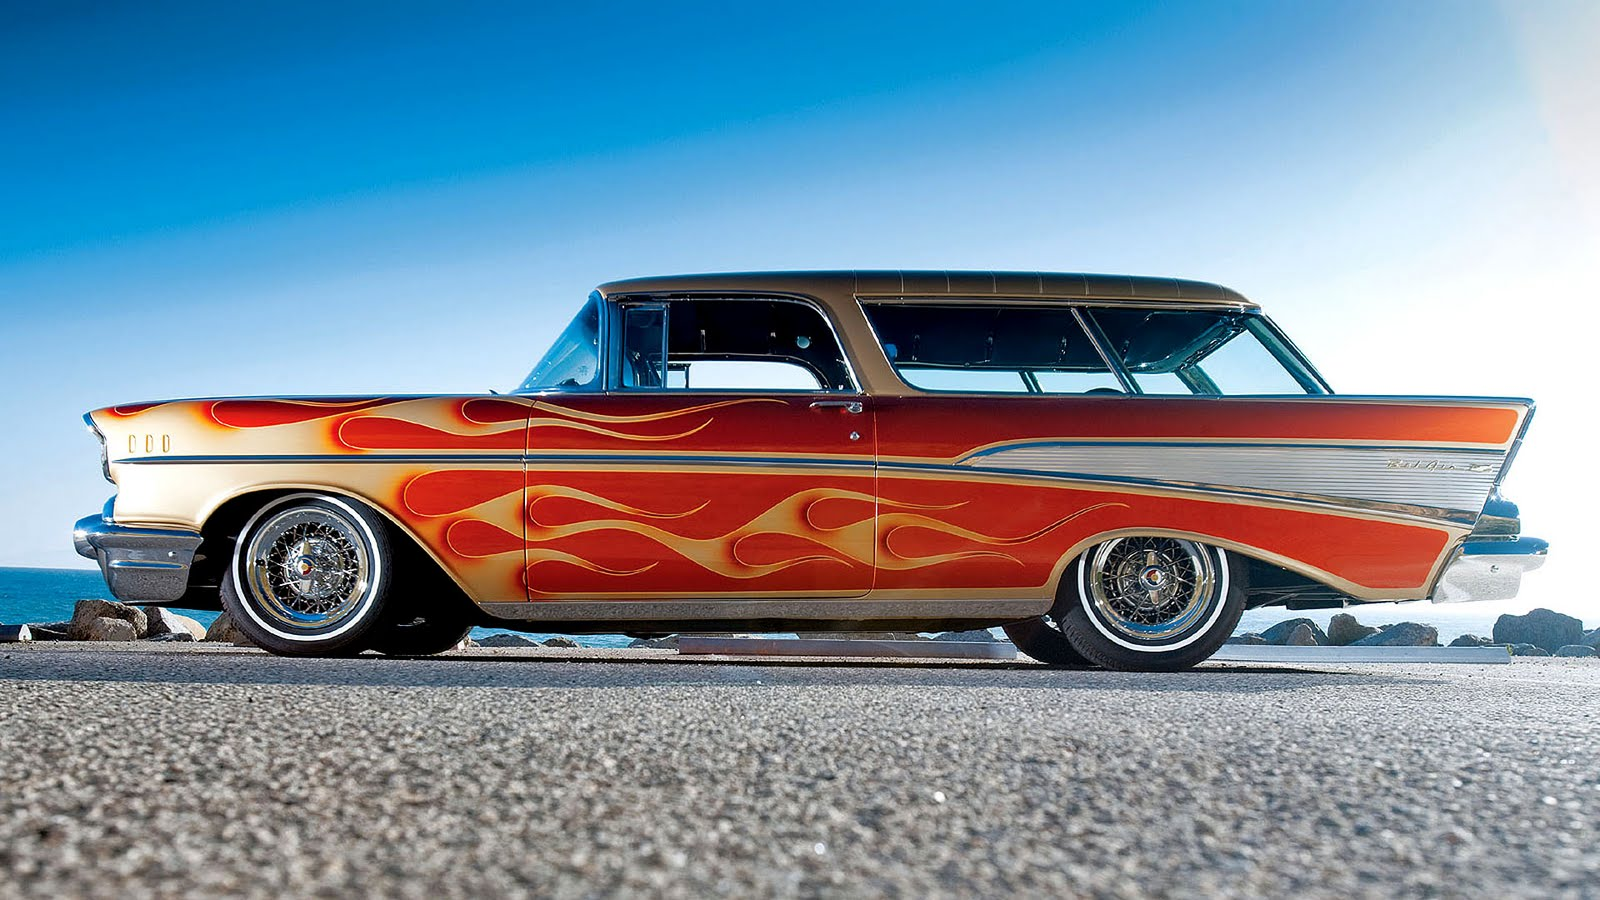 1600x900 - Chevrolet Nomad Wallpapers 21